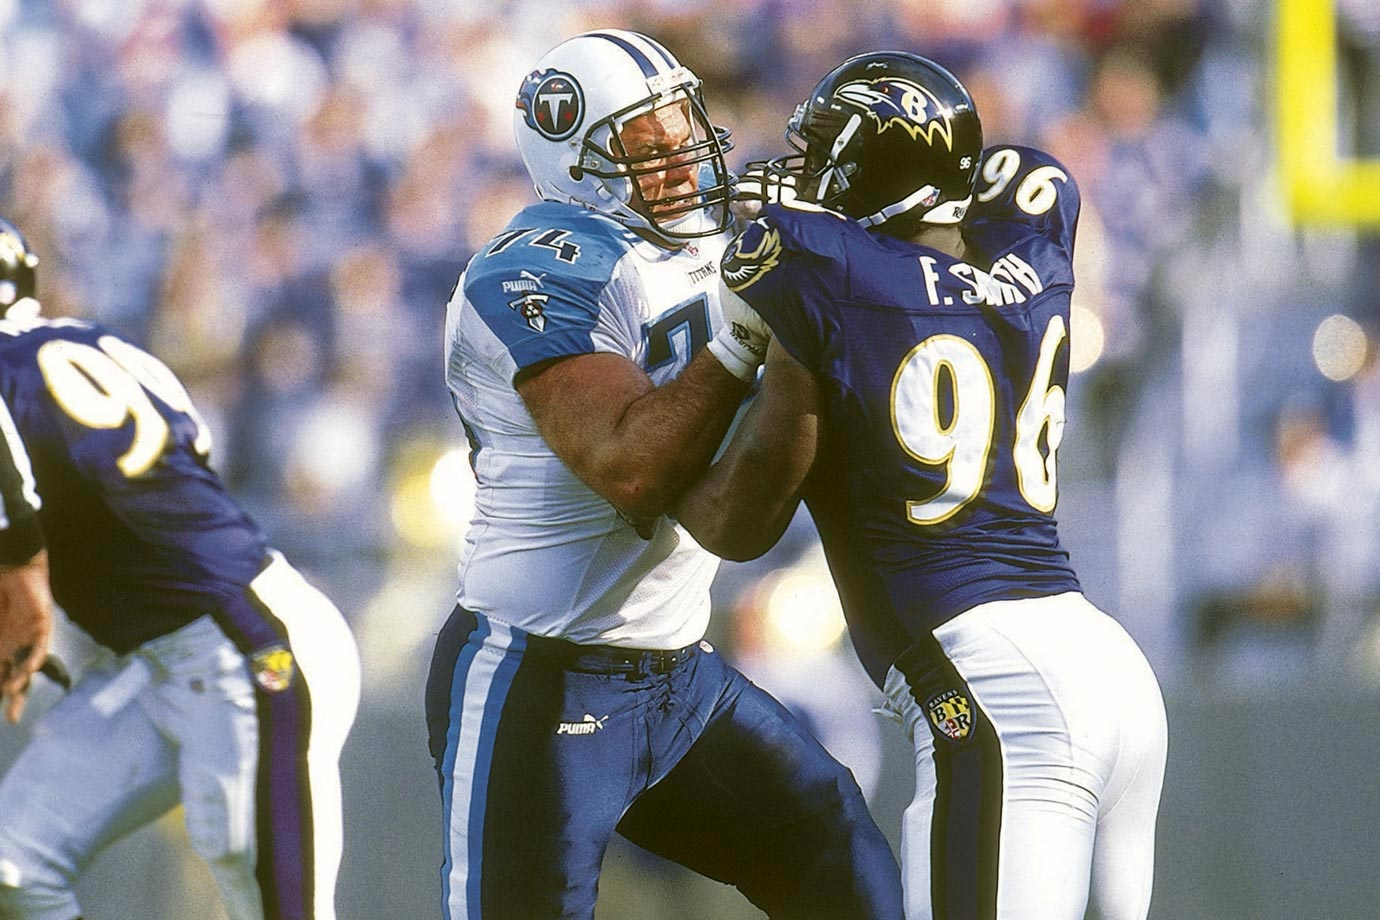 Matthews was a true ironman, starting 292 games across every position on the offensive line. His Credentials: 14-time Pro Bowl selection, 10-time All-Pro, named to NFL's All-Decade Team for the 1990s, second all-time in career games played (296), ranked No. 78 on NFL's list of 100 greatest players, inducted into Hall of Fame in 2007. Others in Consideration: Kevin Williams (2003, Vikings); Brian Urlacher (2000, Bears); Fred Taylor (1998, Jaguars); Richmond Webb (1990, Dolphins); Jerome Brown (1987, Eagles)